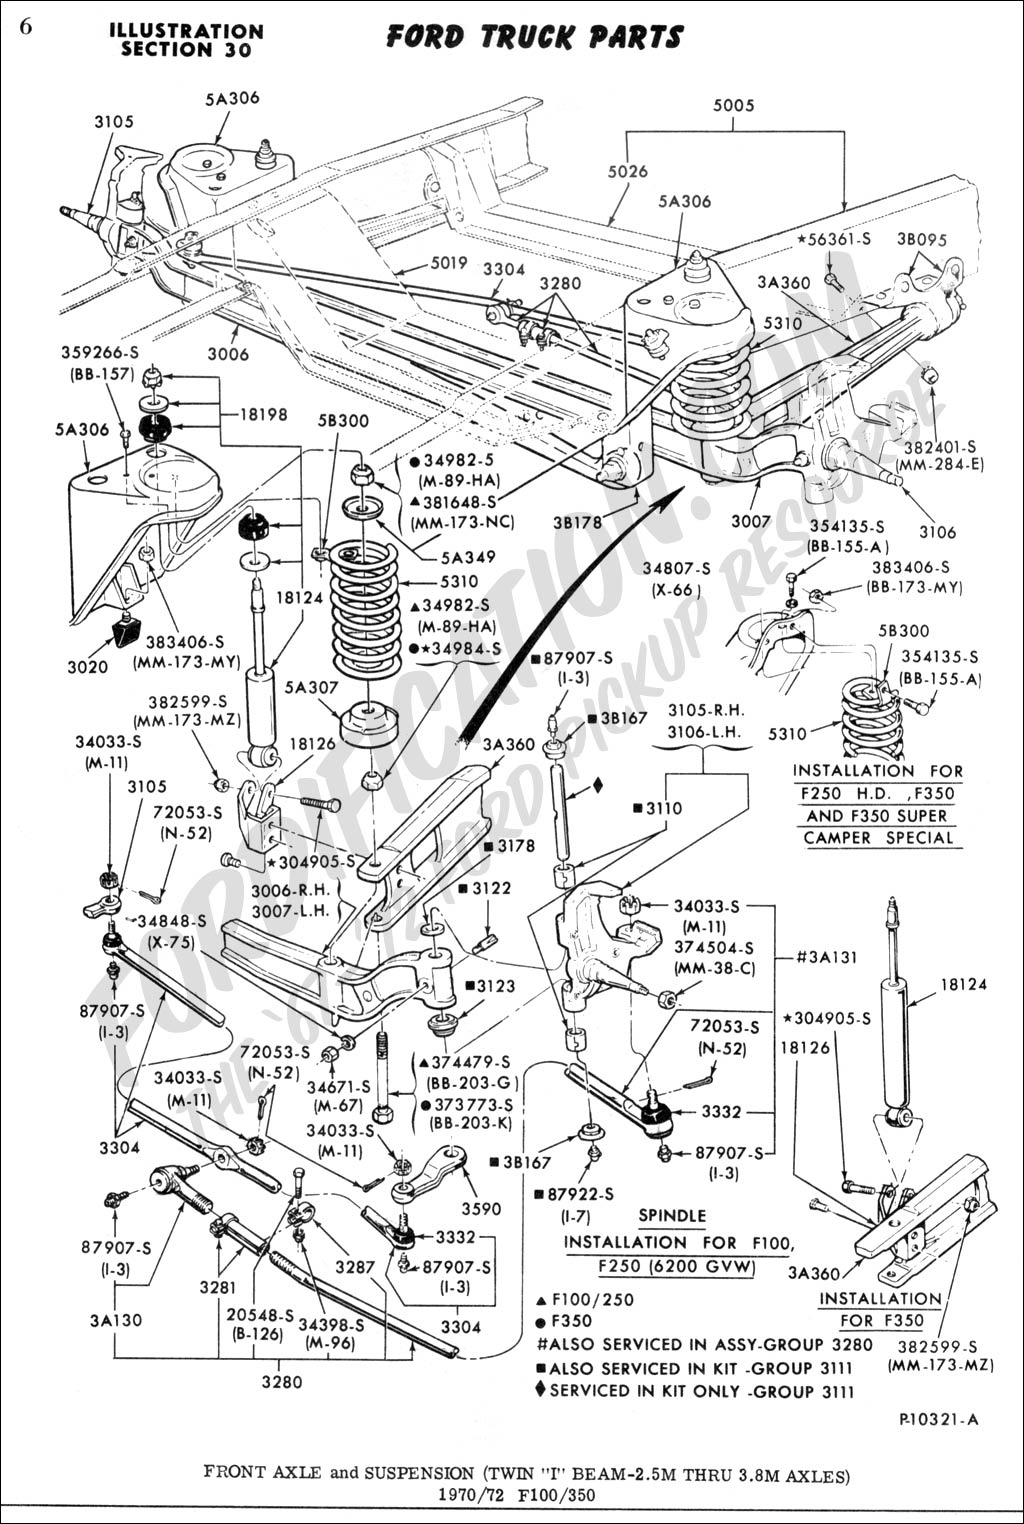 hight resolution of ford ranger undercarriage diagram lzk gallery wiring diagram go ford f150 undercarriage diagram ford front suspension